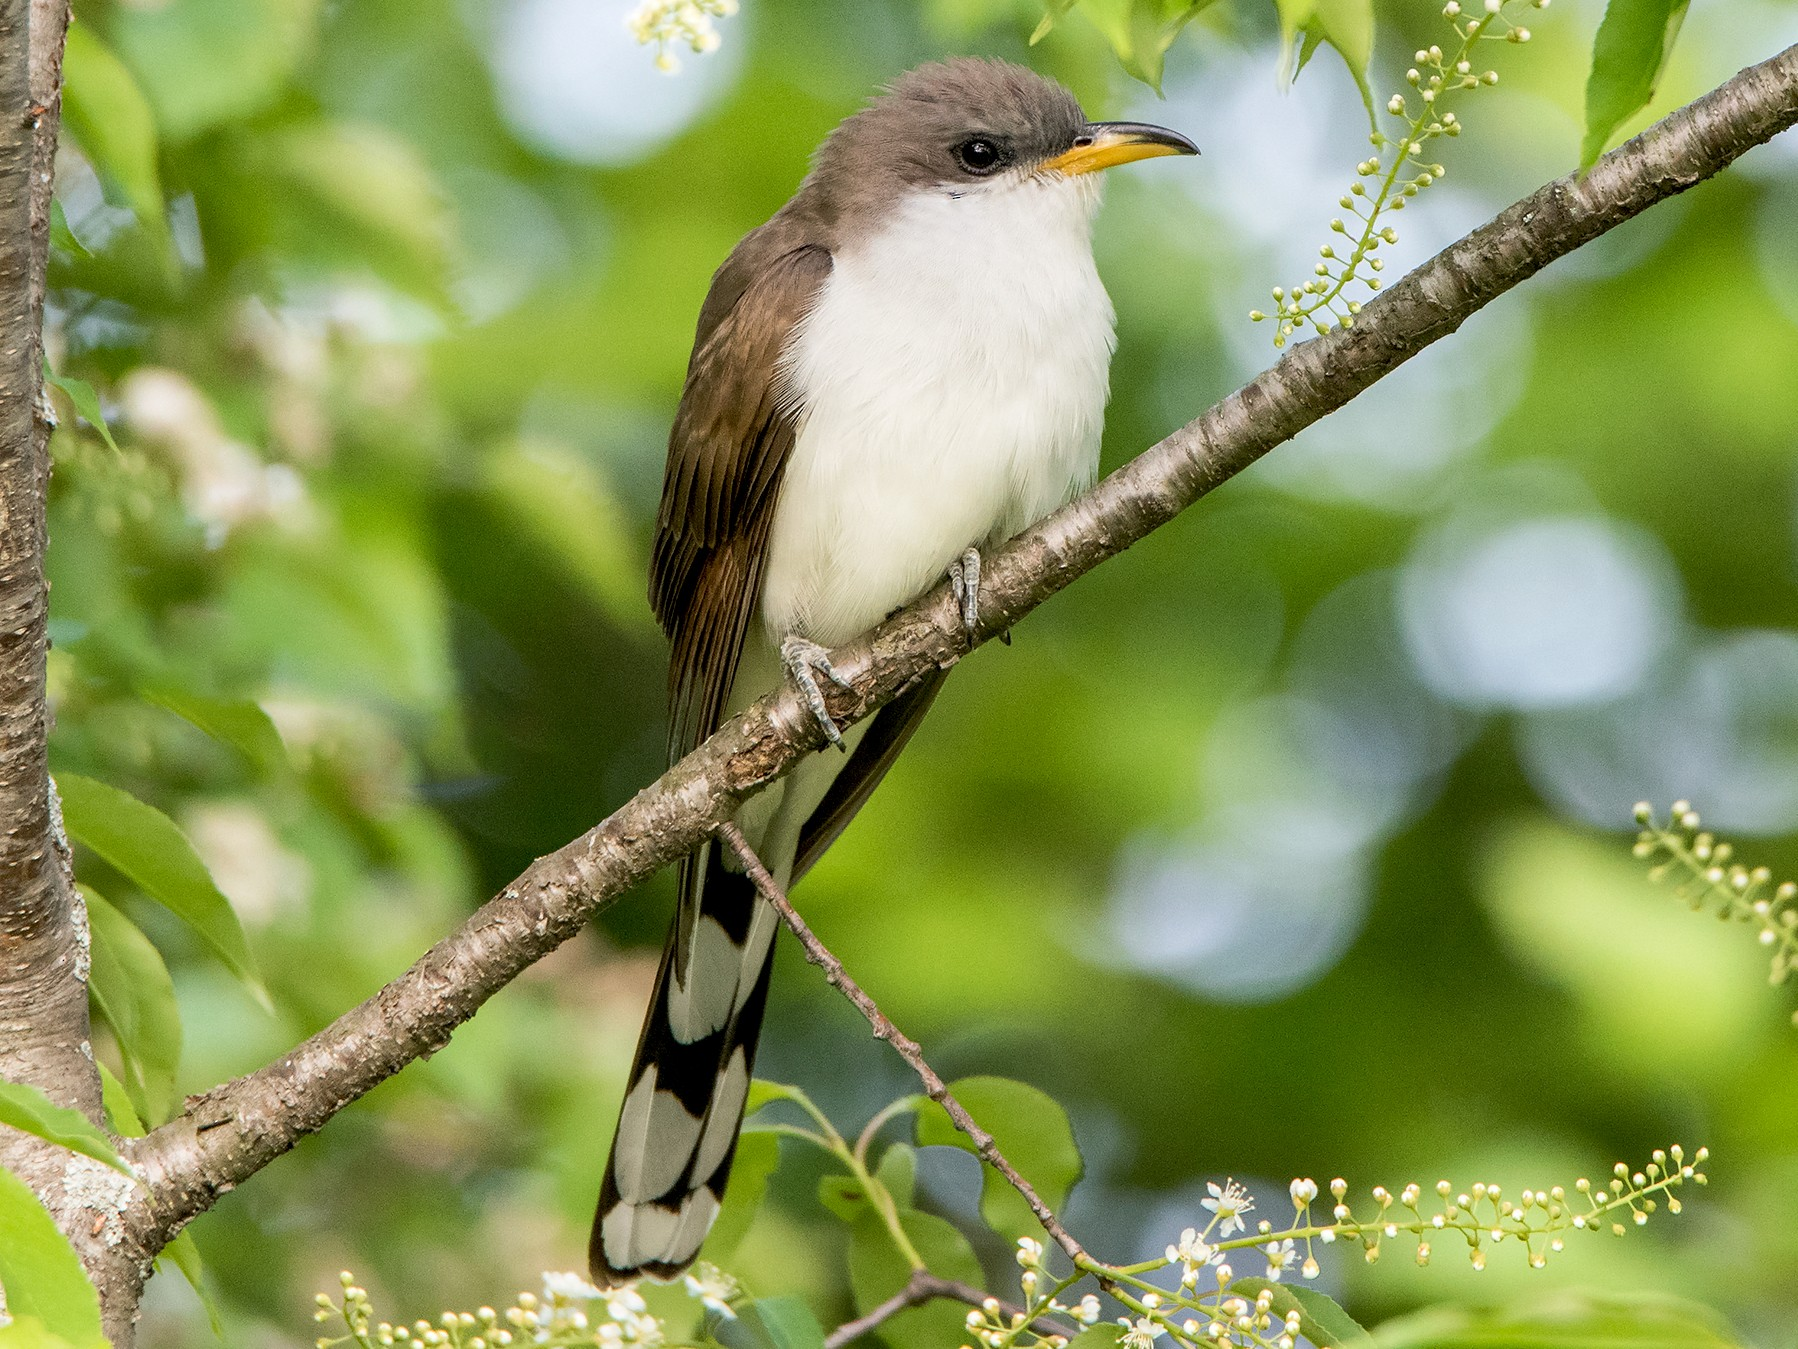 Yellow-billed Cuckoo - Sue Barth